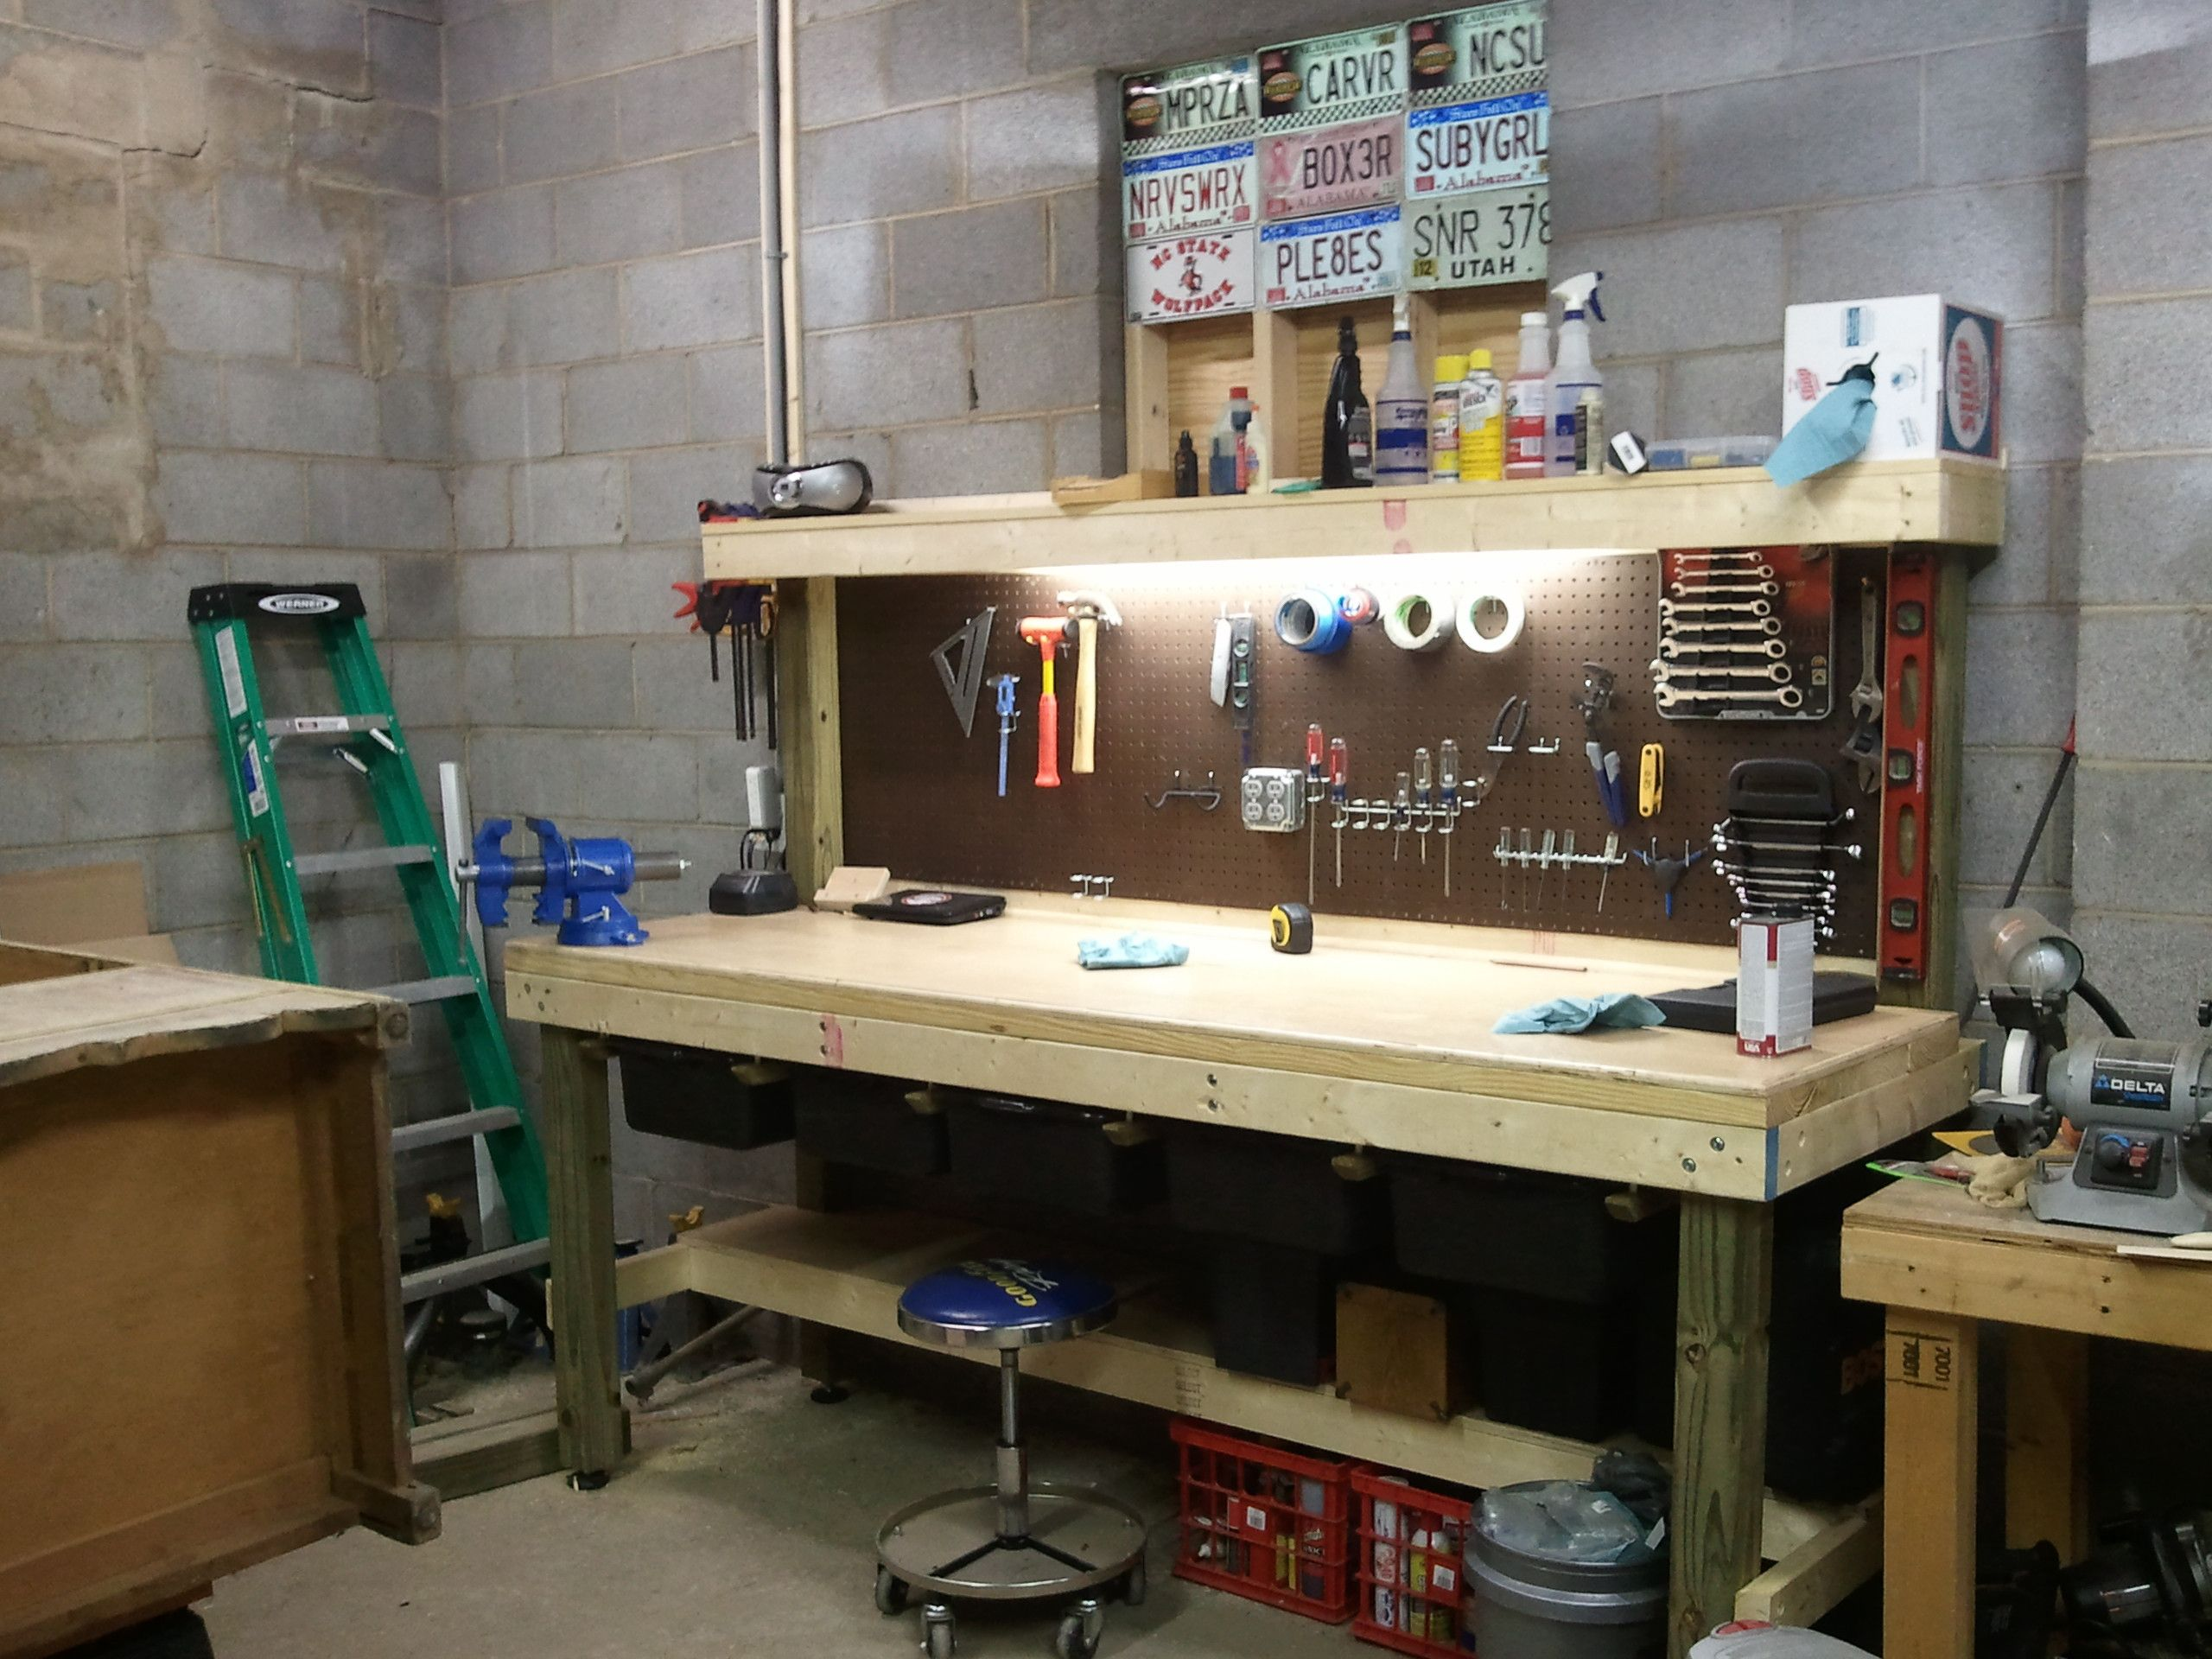 My Overbuilt Behemoth Garage Workbench Low Shelves Work Surface And Garage Workbench